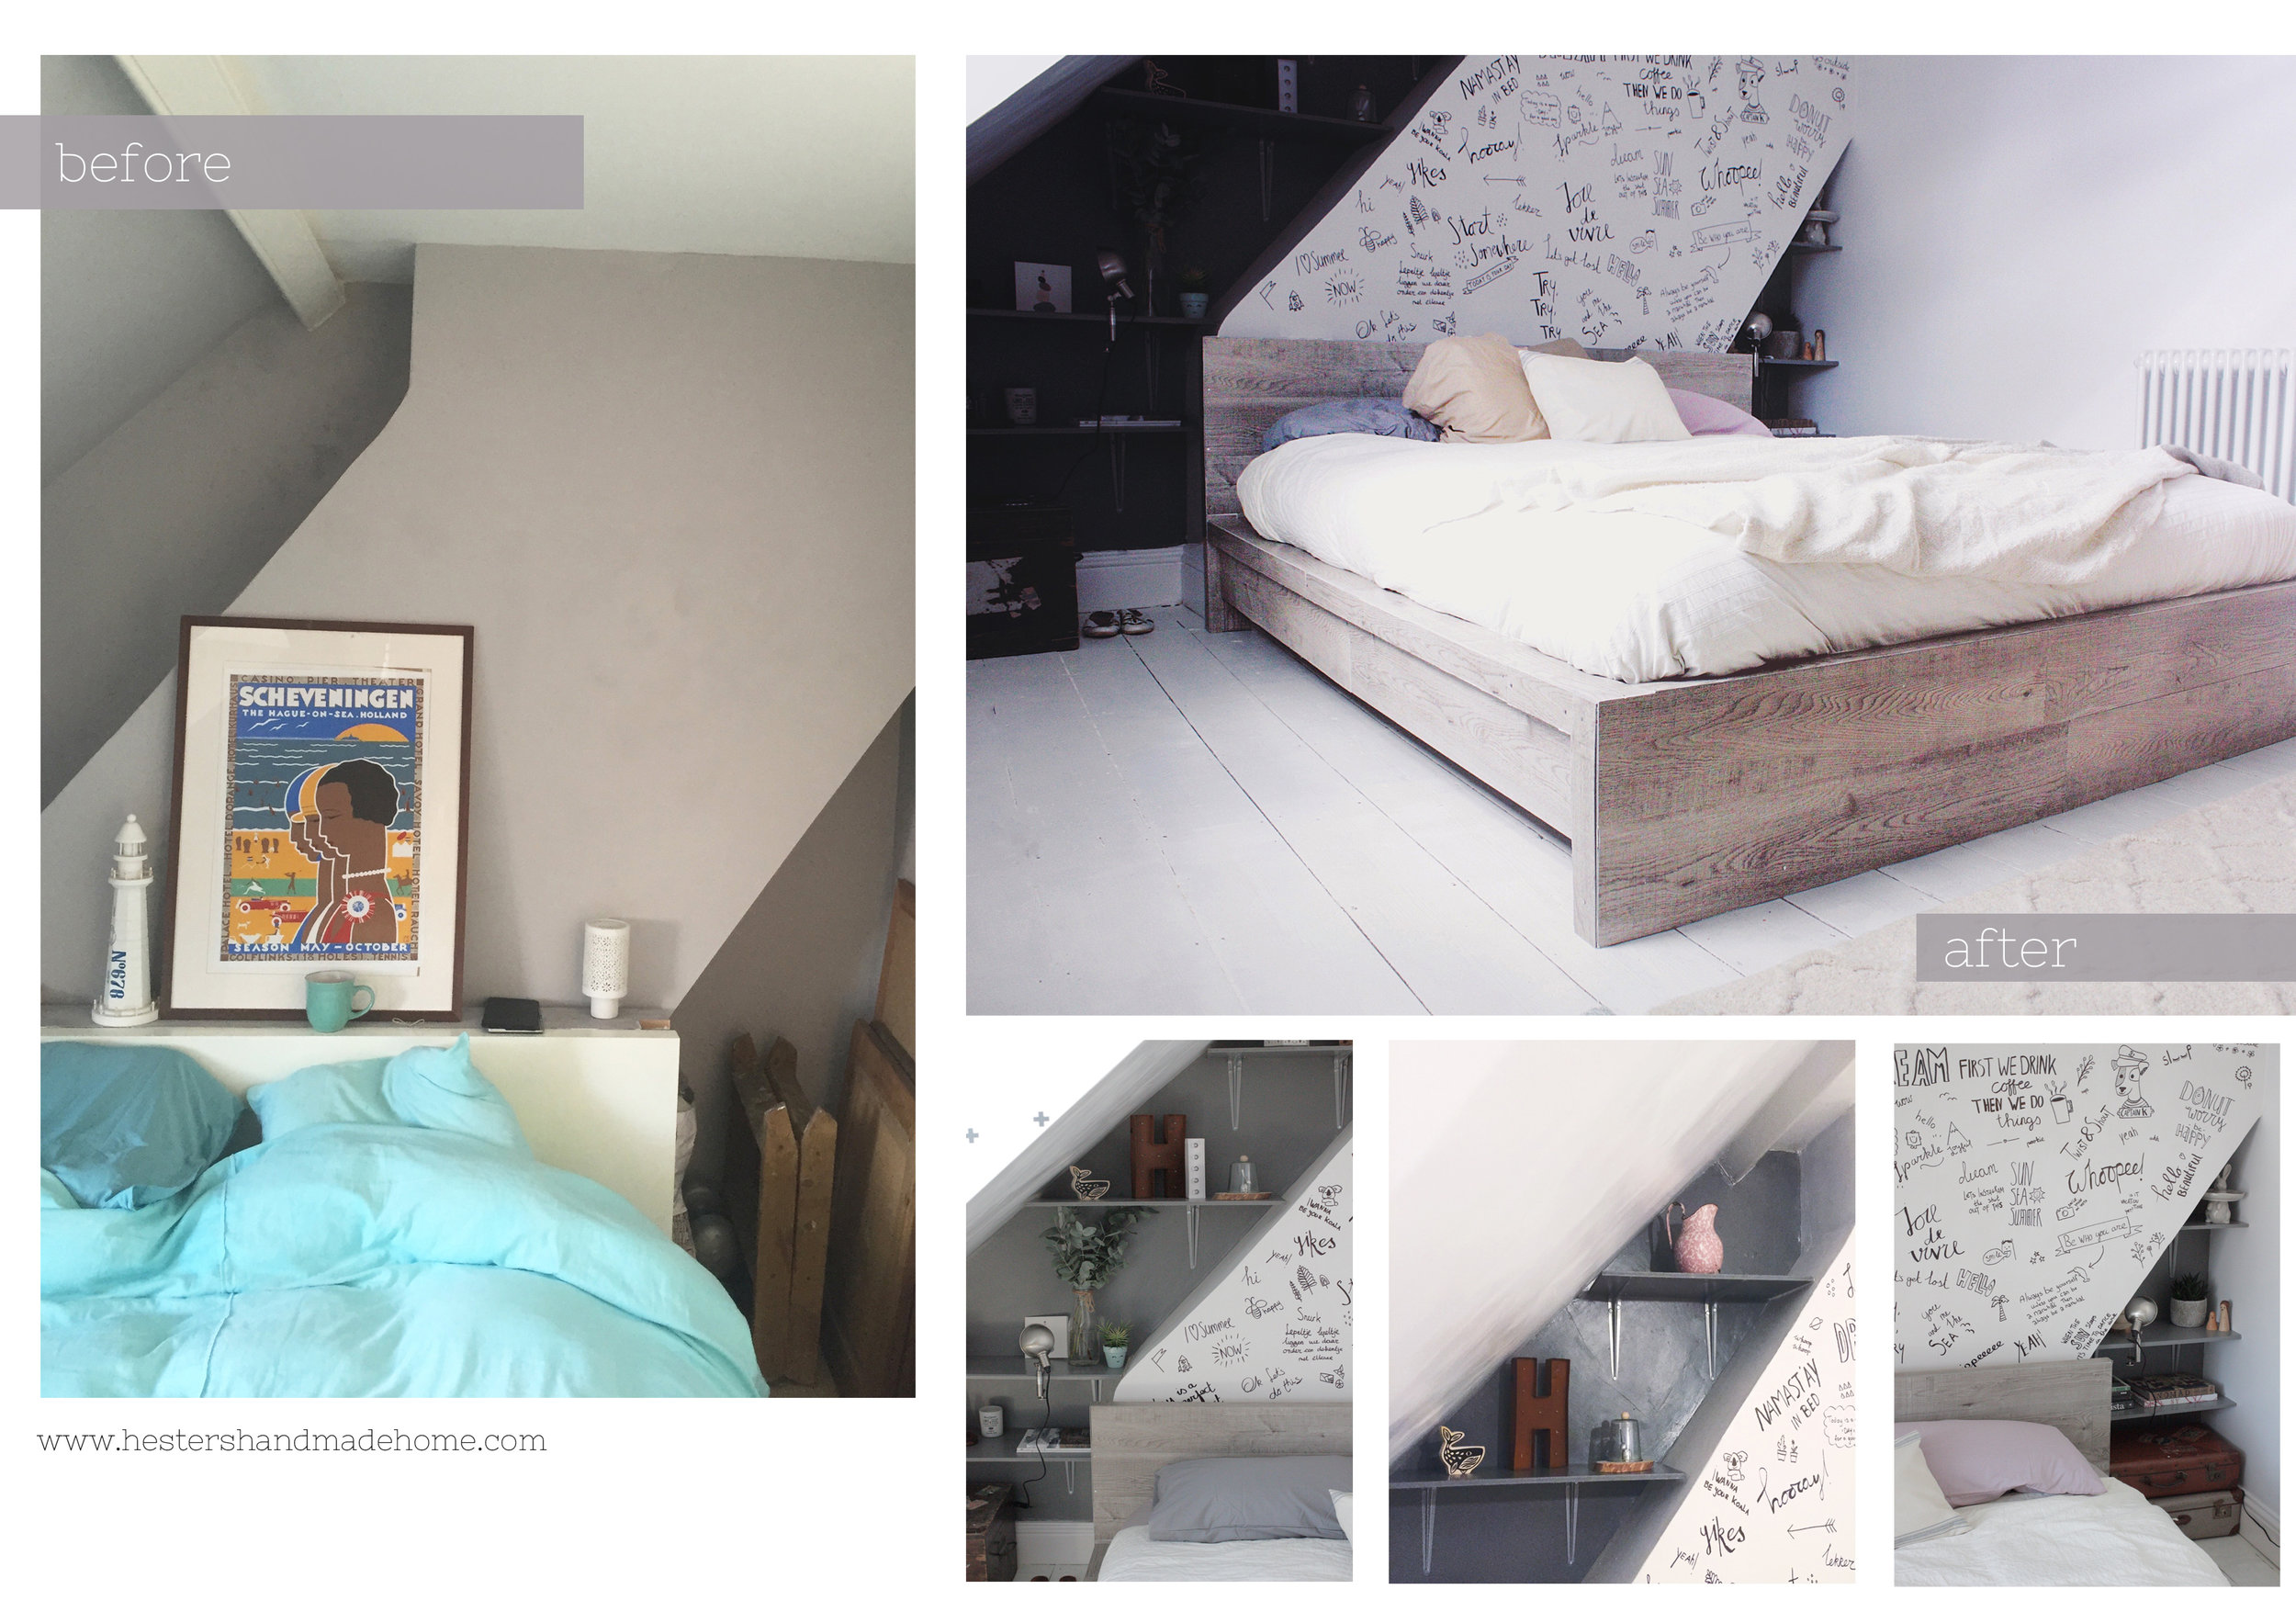 Bedroom makeover by www.hestershandmadehome.com